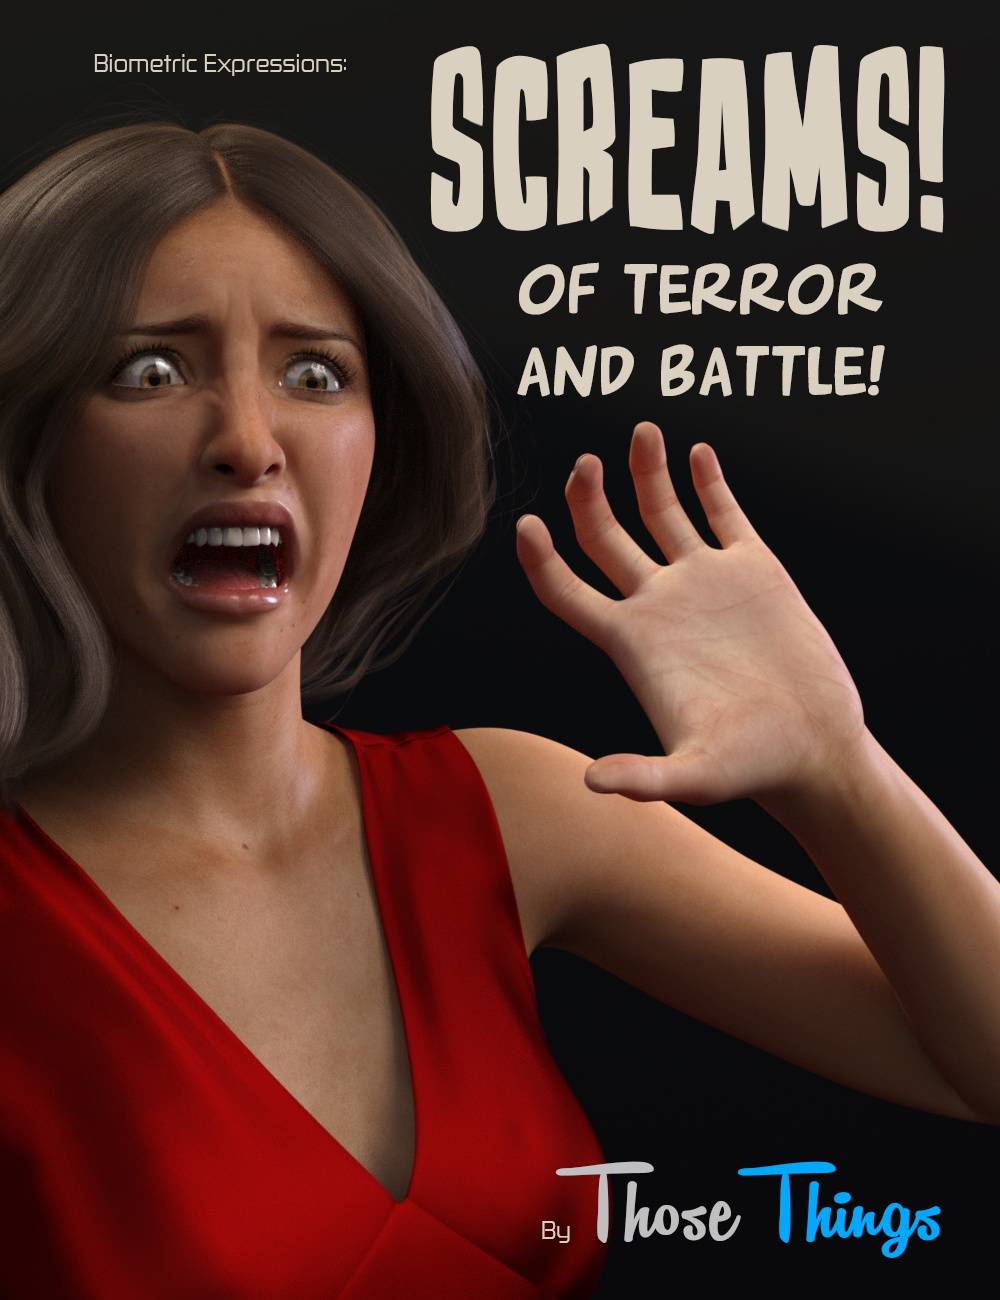 Biometric Expressions: Screams of Terror and Battle! for Genesis 3 Female(s) by: Those Things, 3D Models by Daz 3D